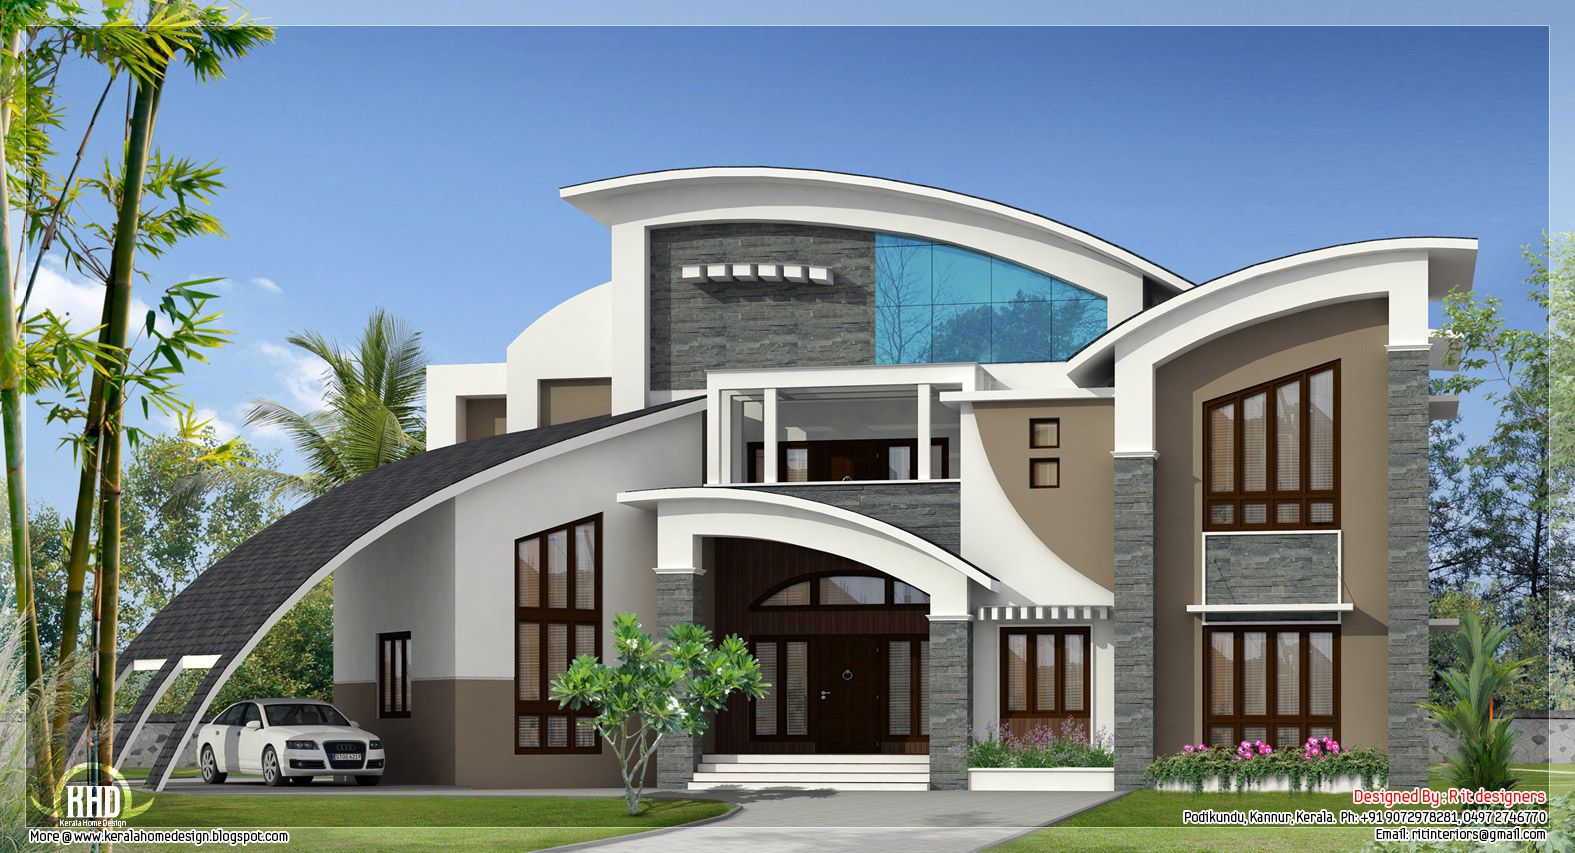 Unique super luxury kerala villa kerala home design and floor house projects pinterest - Cool home decor websites model ...